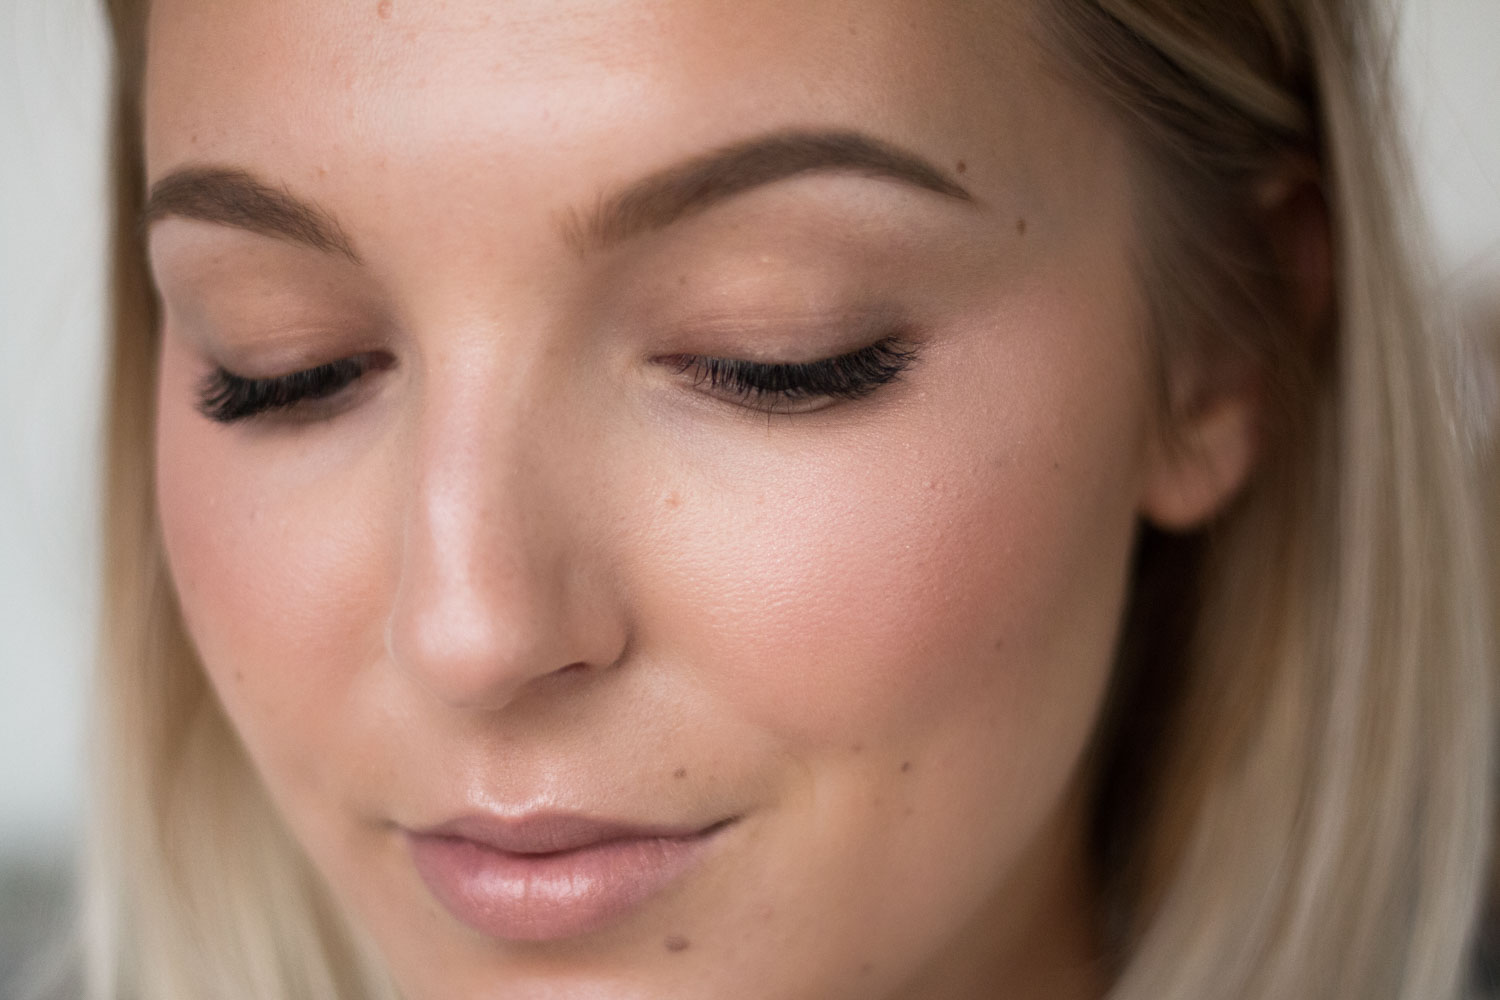 lash-extensions-xtreme-lashes-vienna-beautyblogger-giveherglitter-6